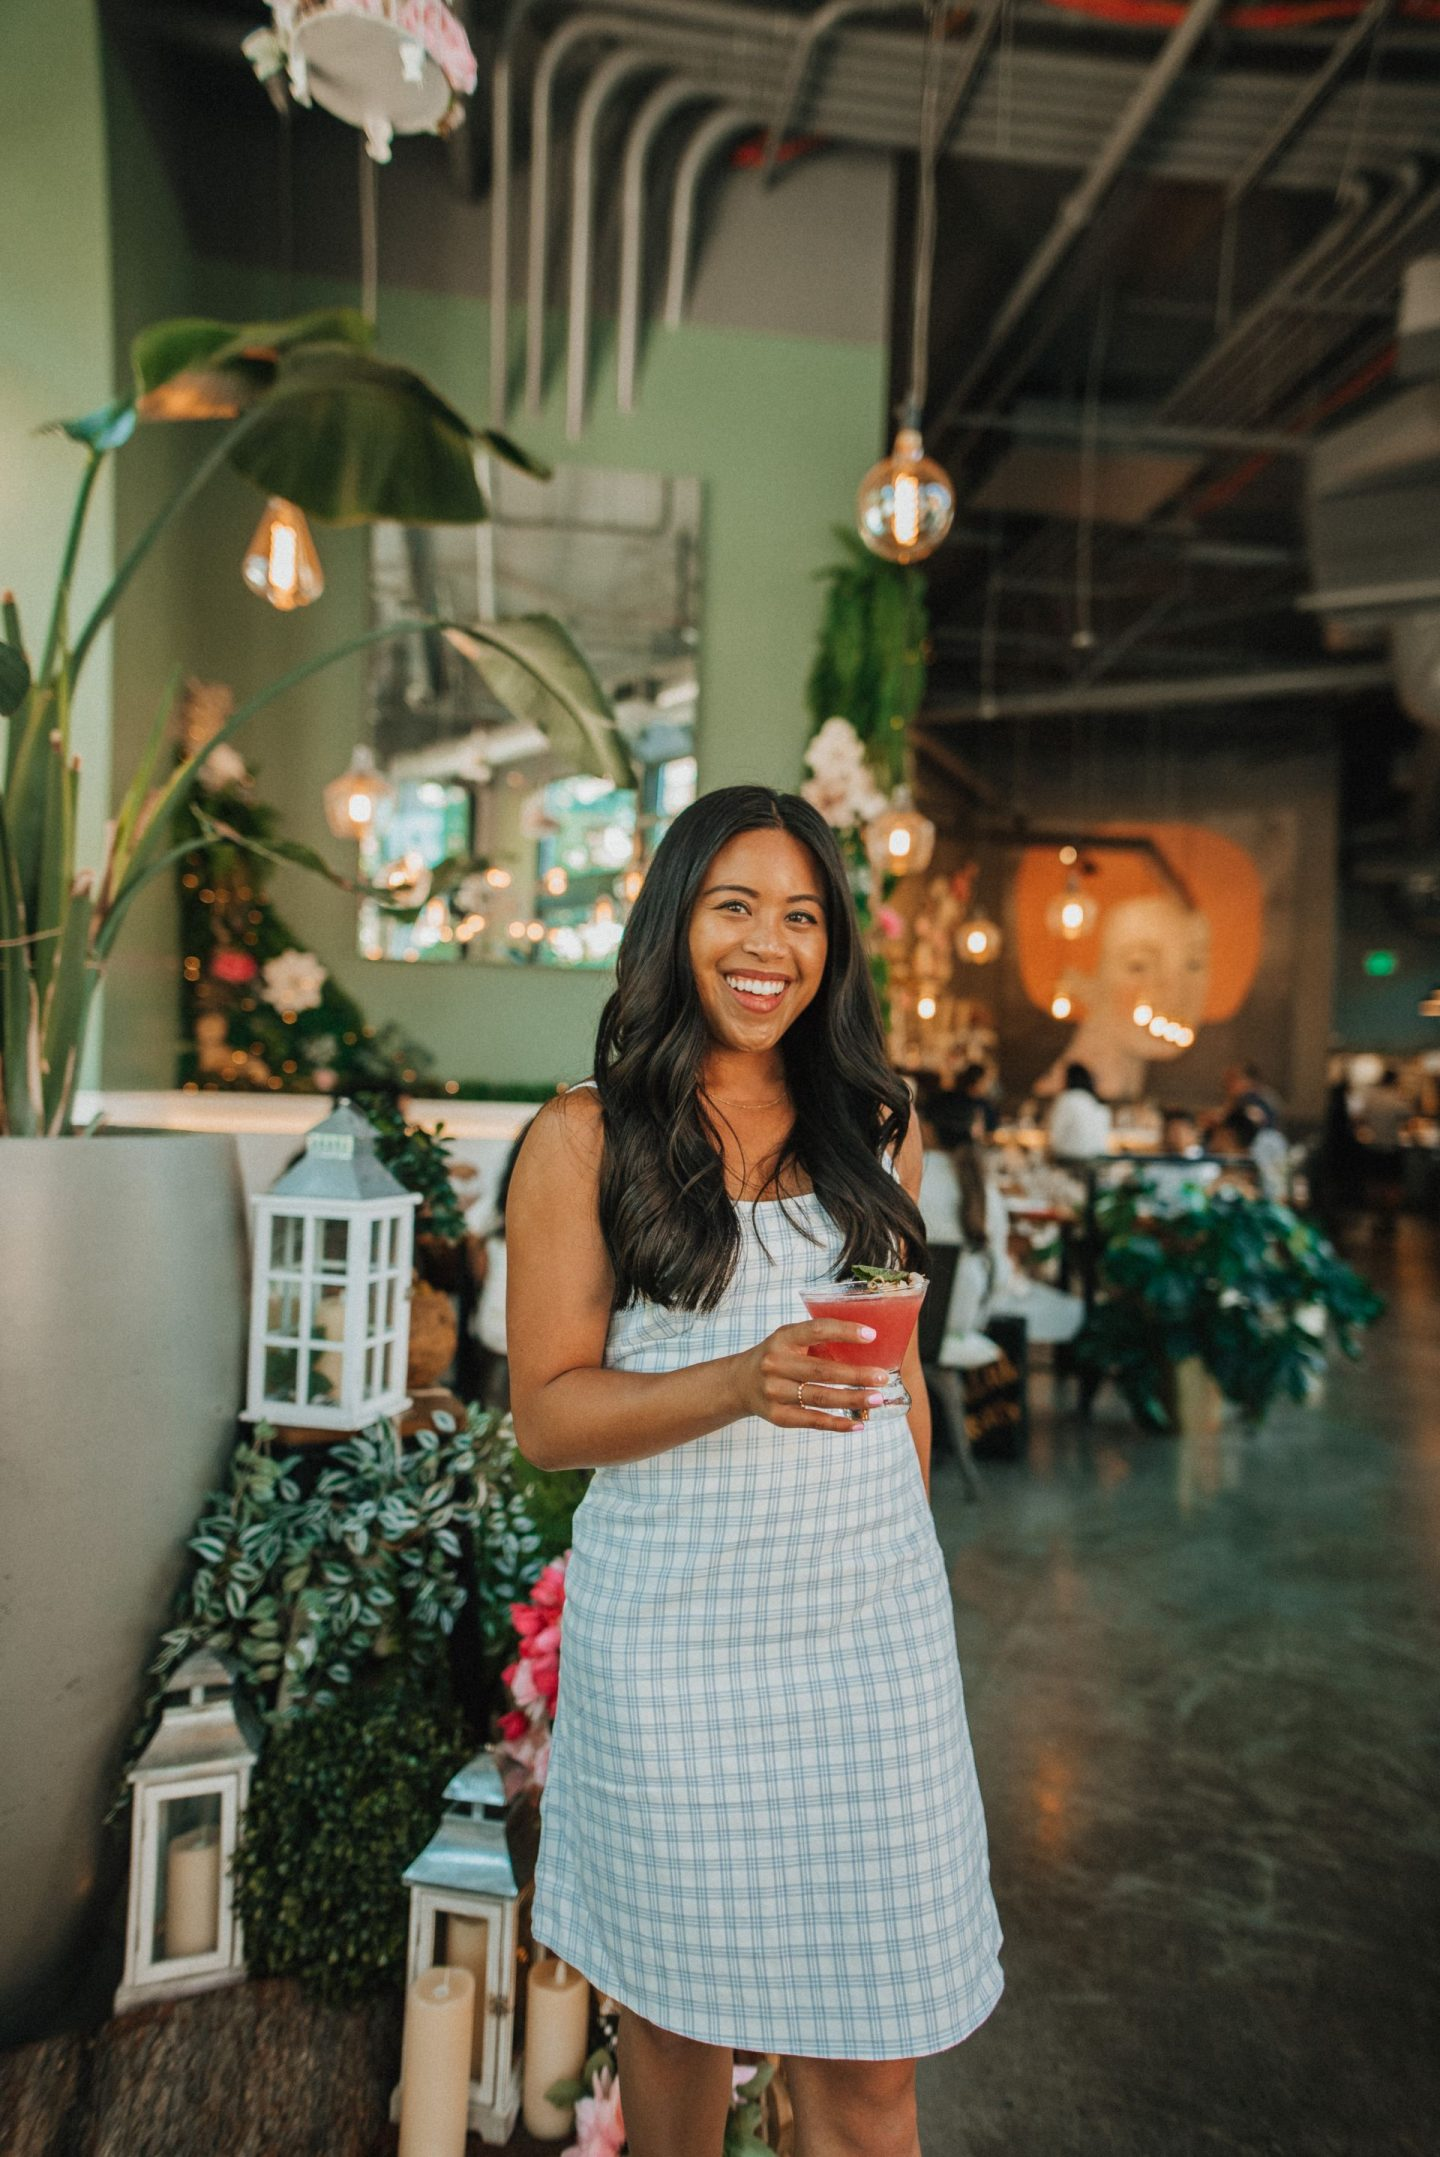 Di Fiora Restaurant in Capitol Hill - Instagrammable restaurants in Seattle - Emma's Edition